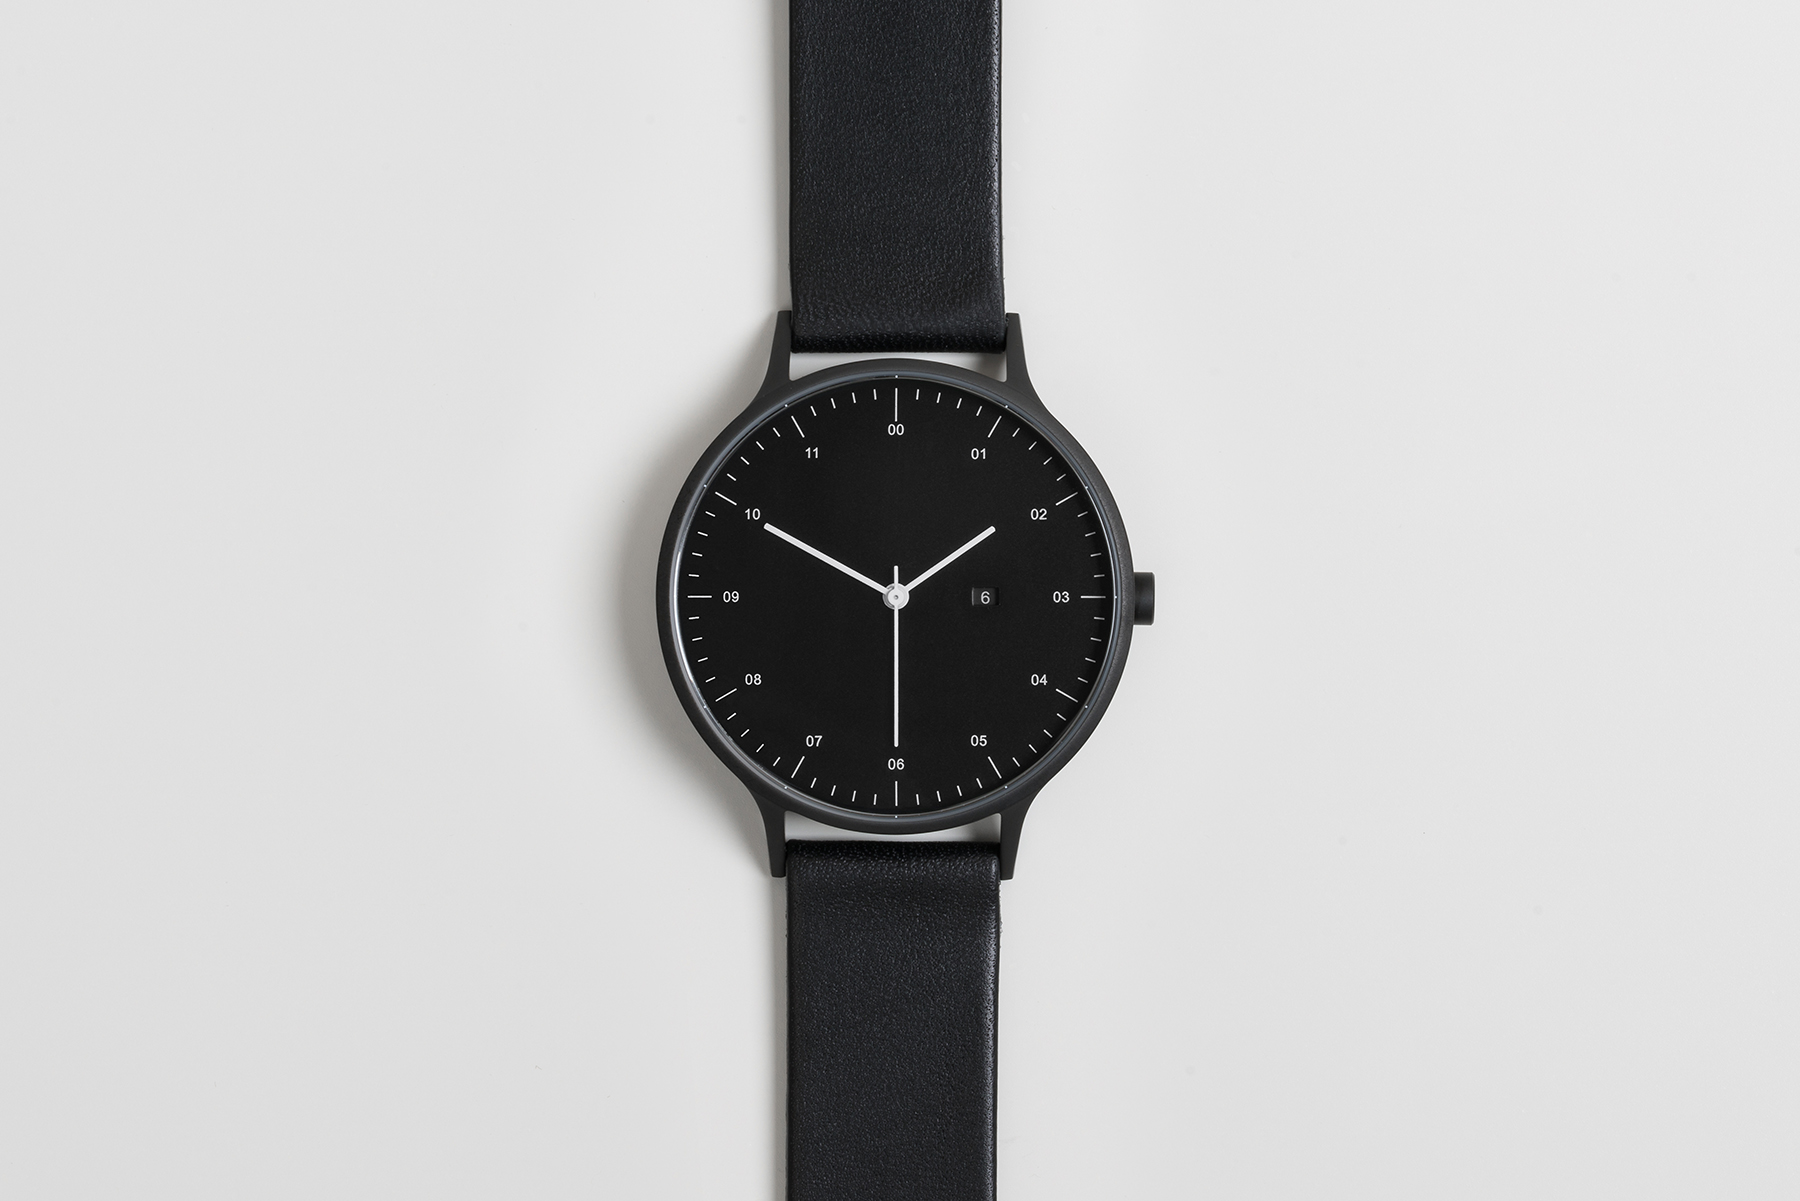 Local Heroes - 01-D by Instrmnt photo by Instrmnt